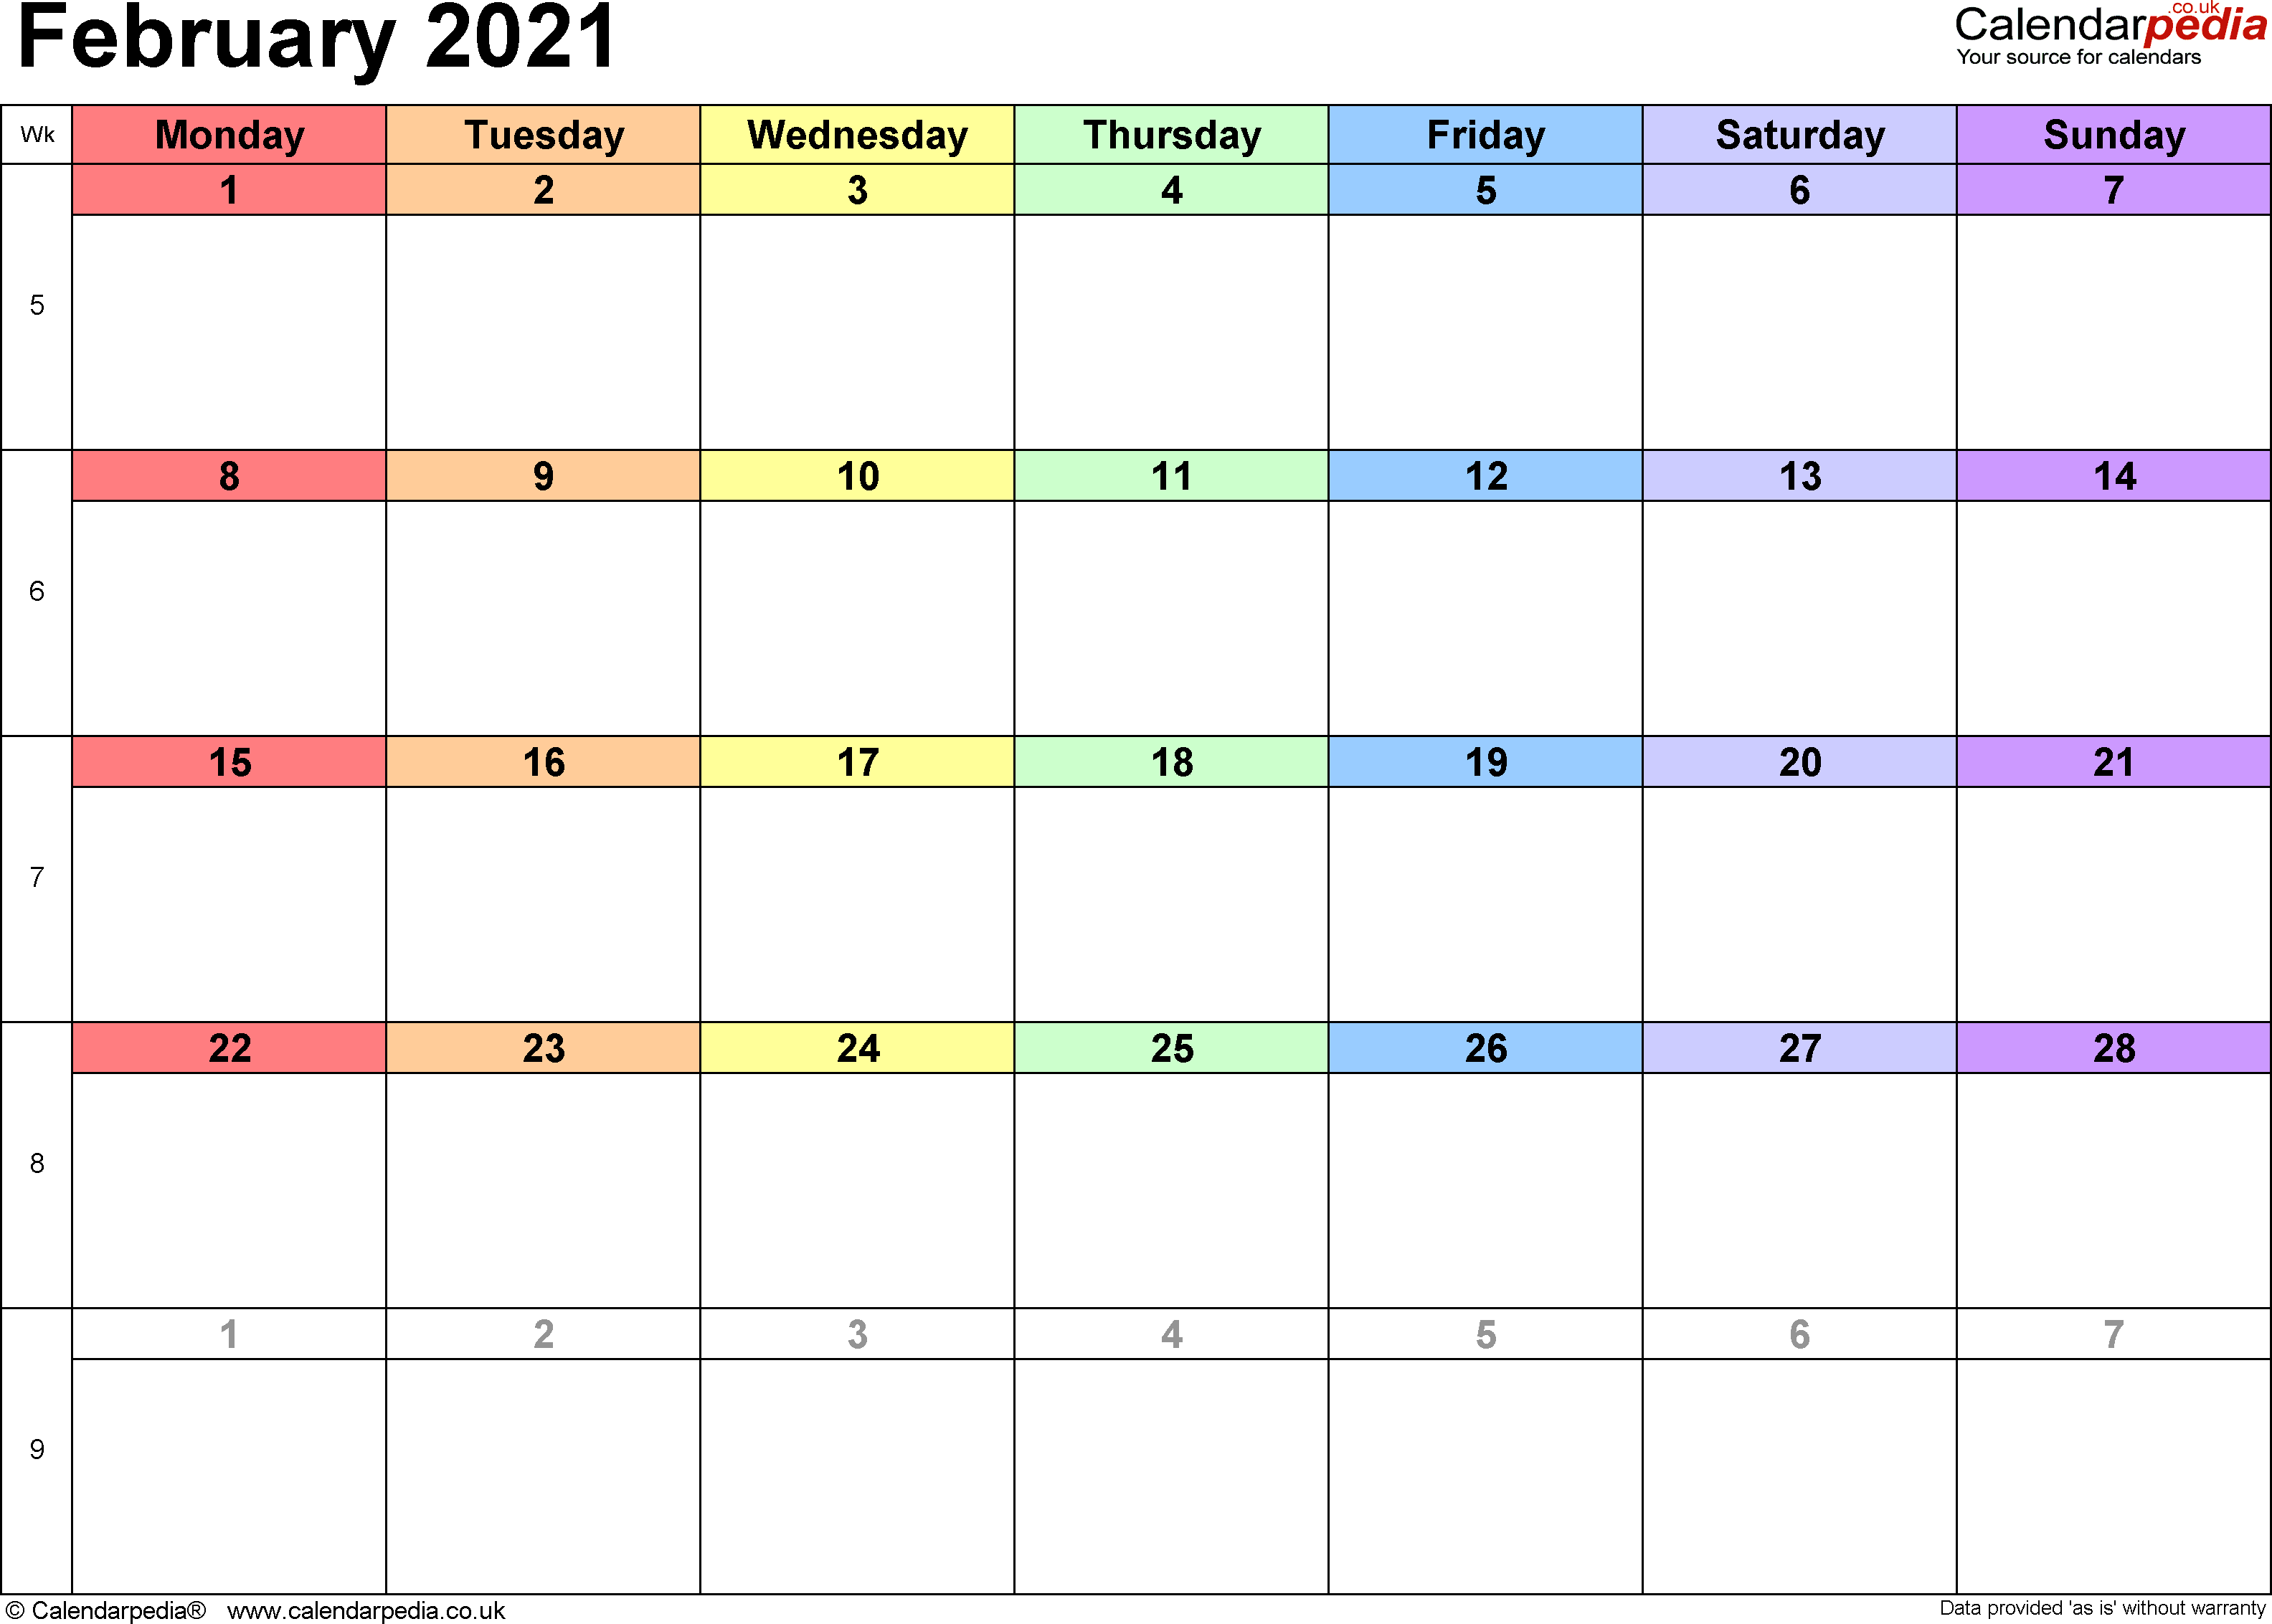 Calendar February 2021, landscape orientation, 1 page, with UK bank holidays and week numbers